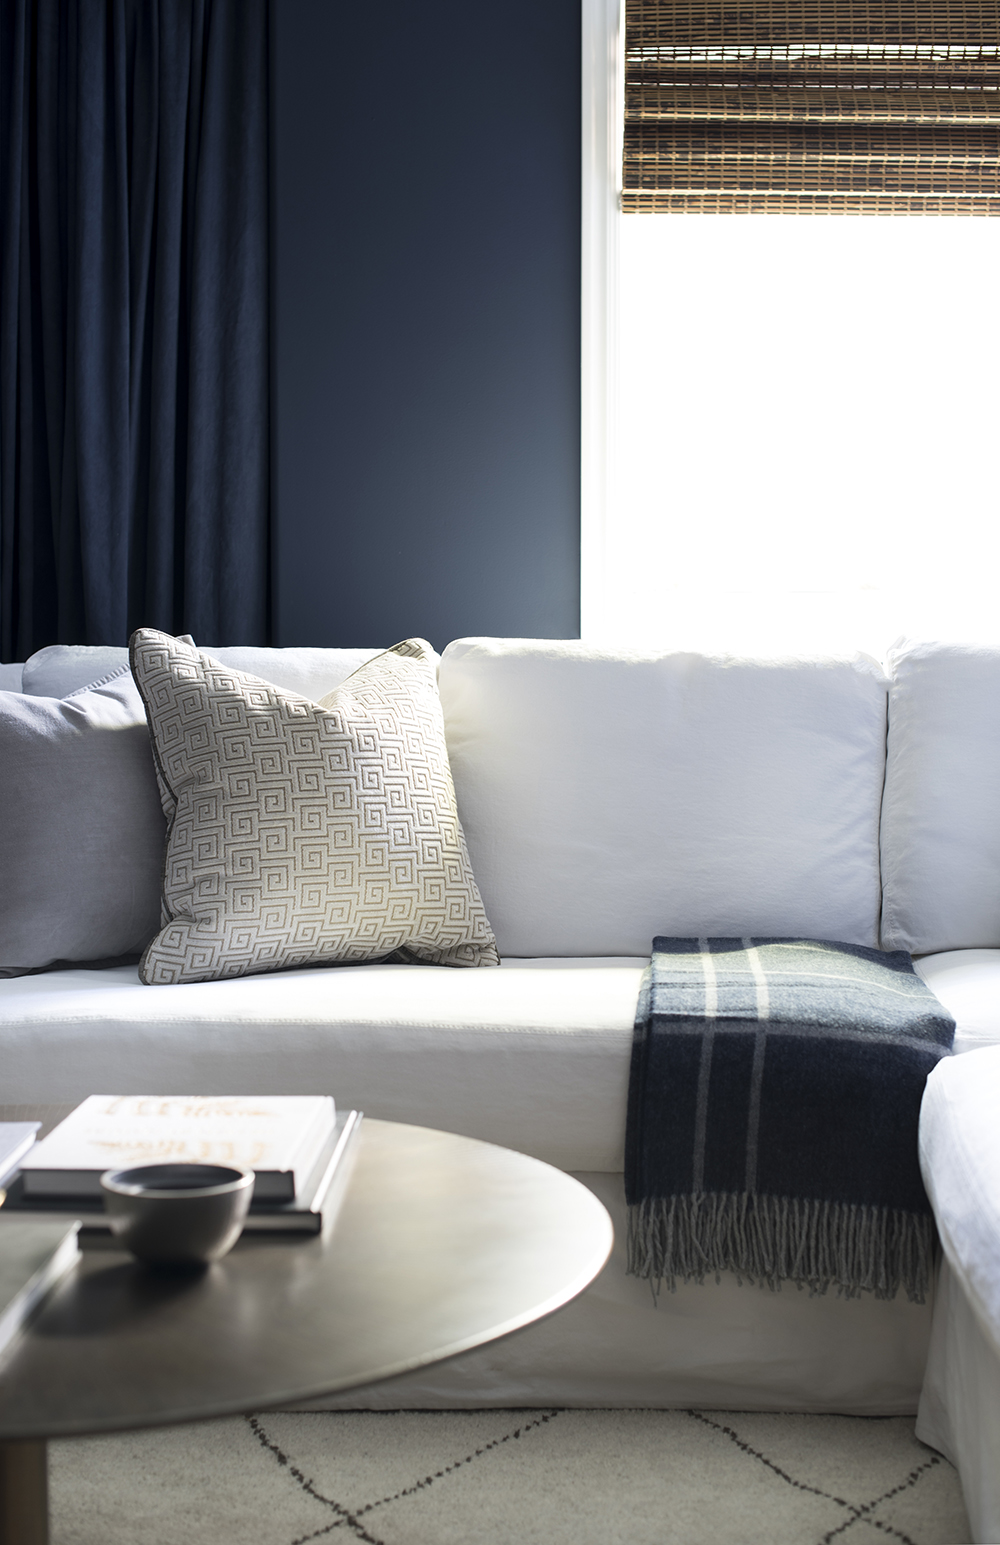 10 Tips for Identifying Quality Furniture - roomfortuesday.com